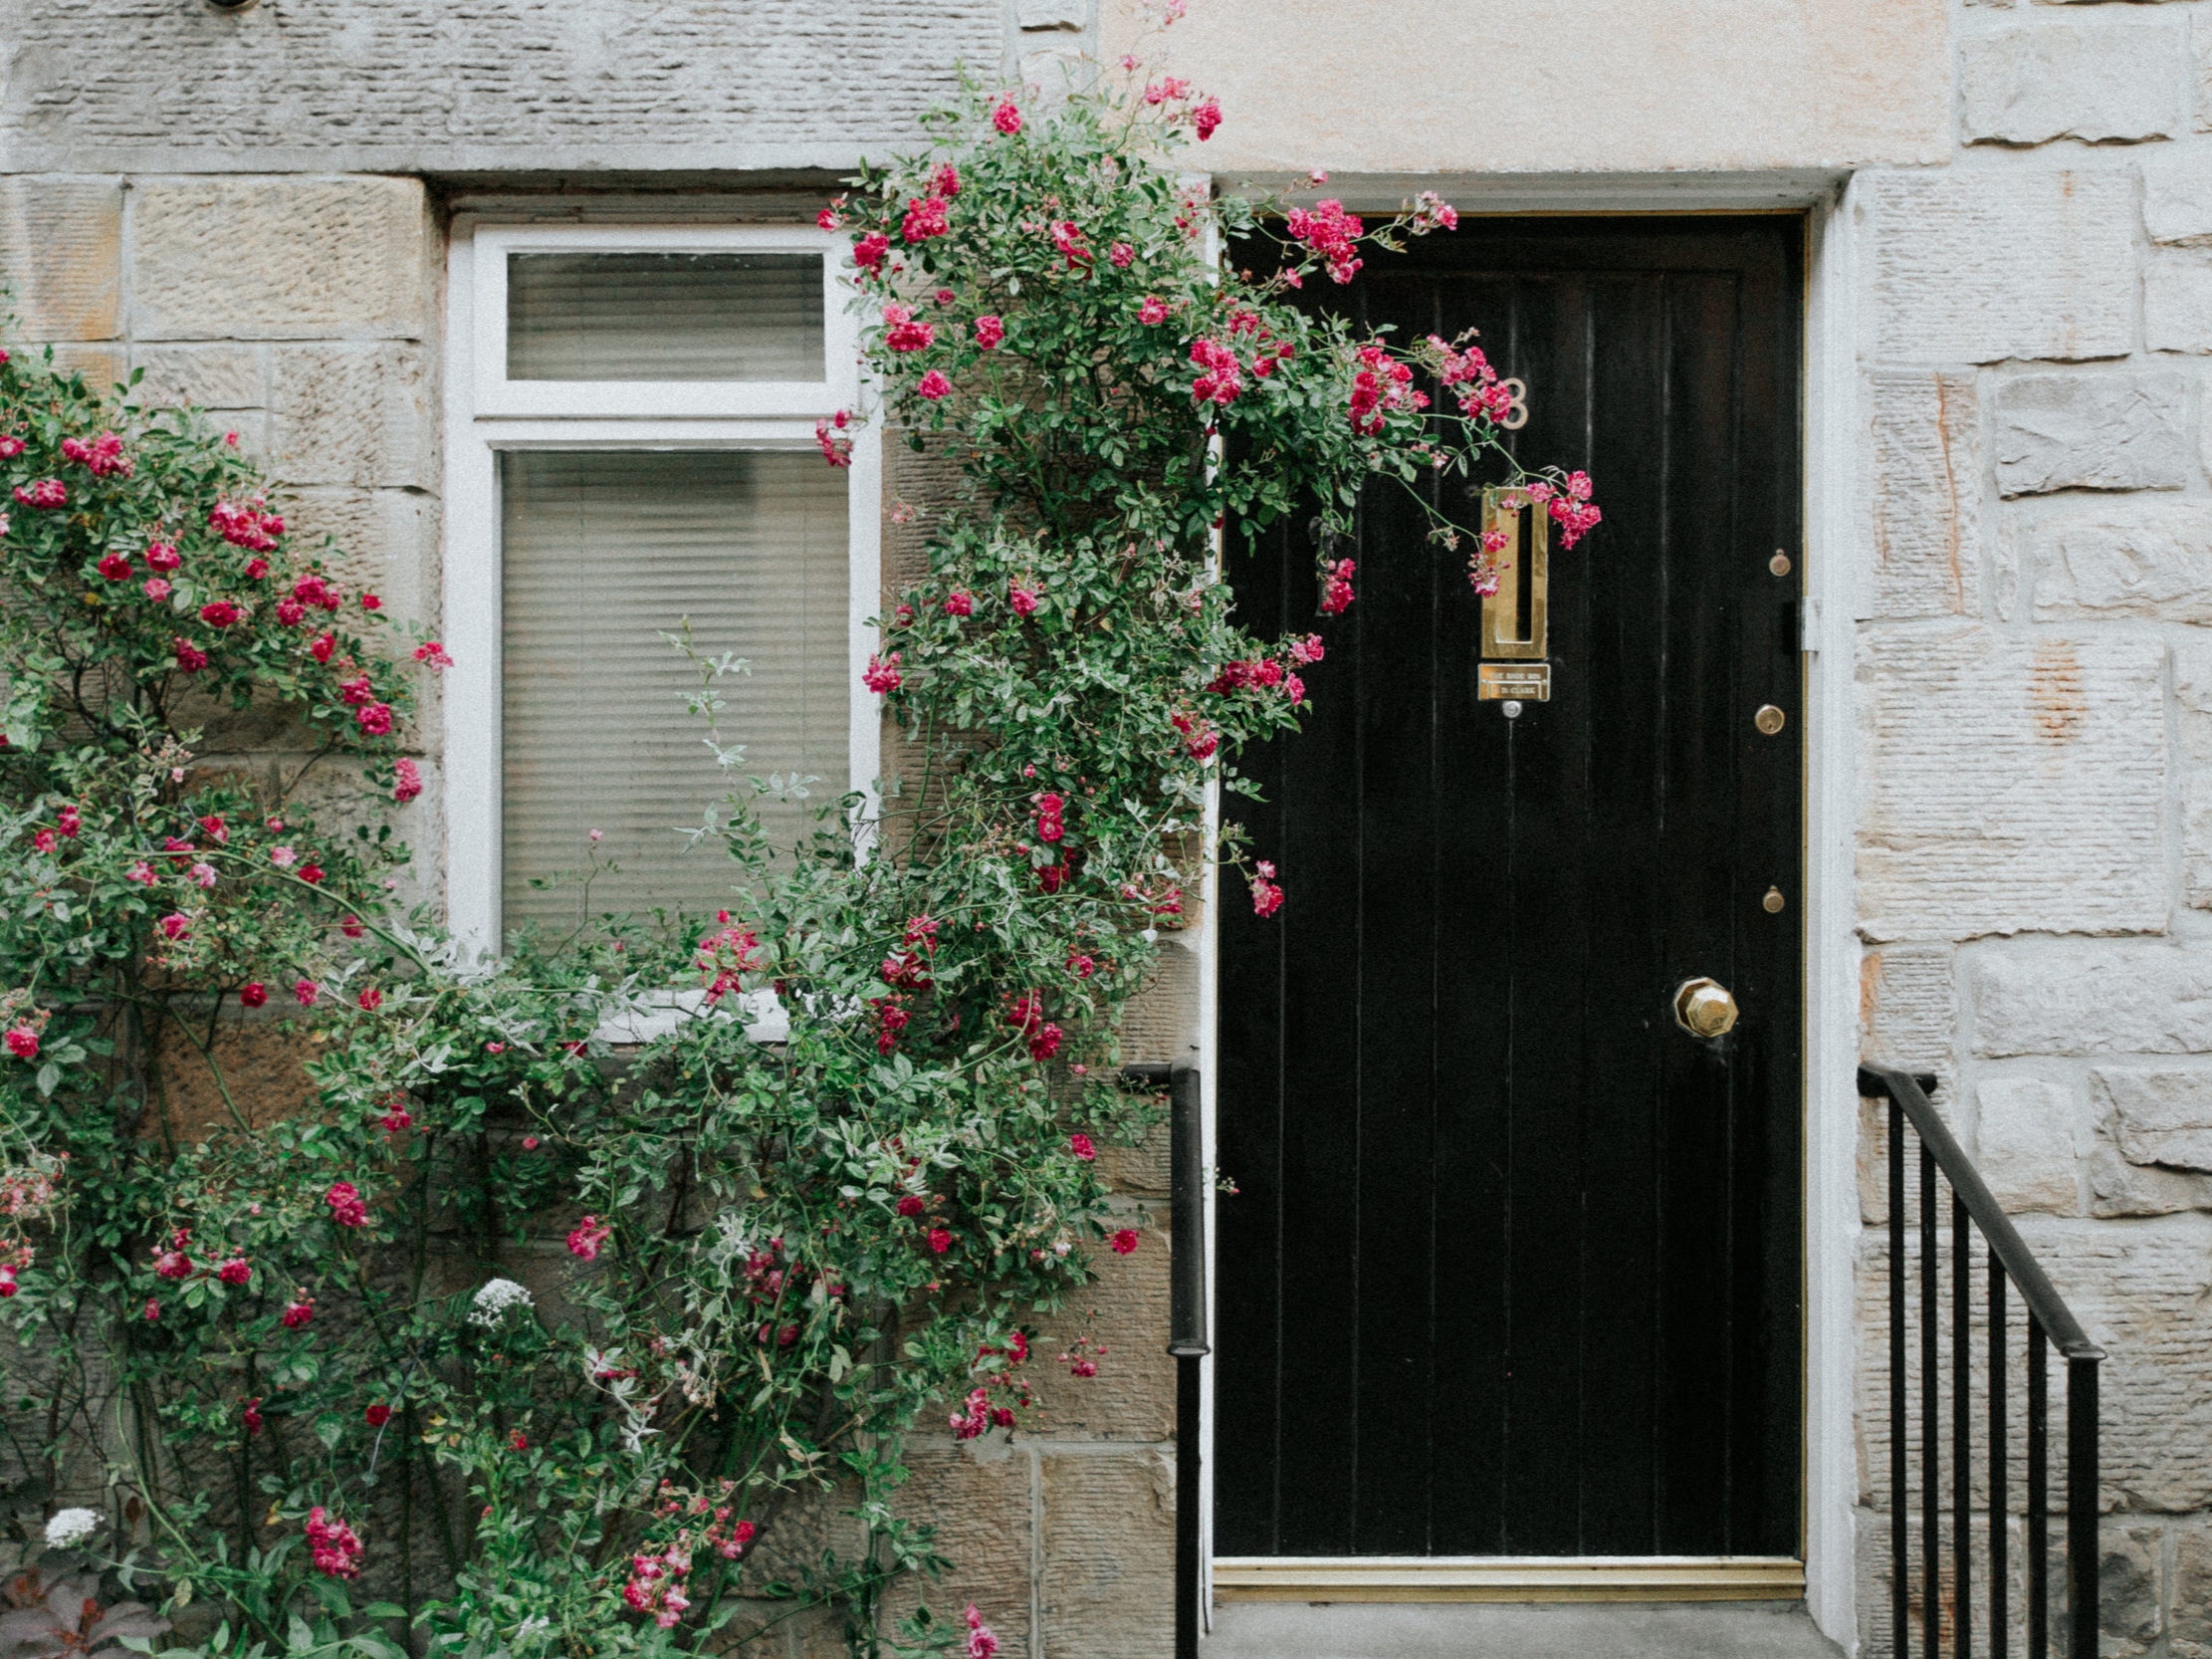 Doors & Windows - HANDYMACK repairs, maintains, and installs exterior and interior doors and windows of every shape and size. Increase your home's efficiency by replacing or repairing cracked or broken interior and exterior doors & windows.